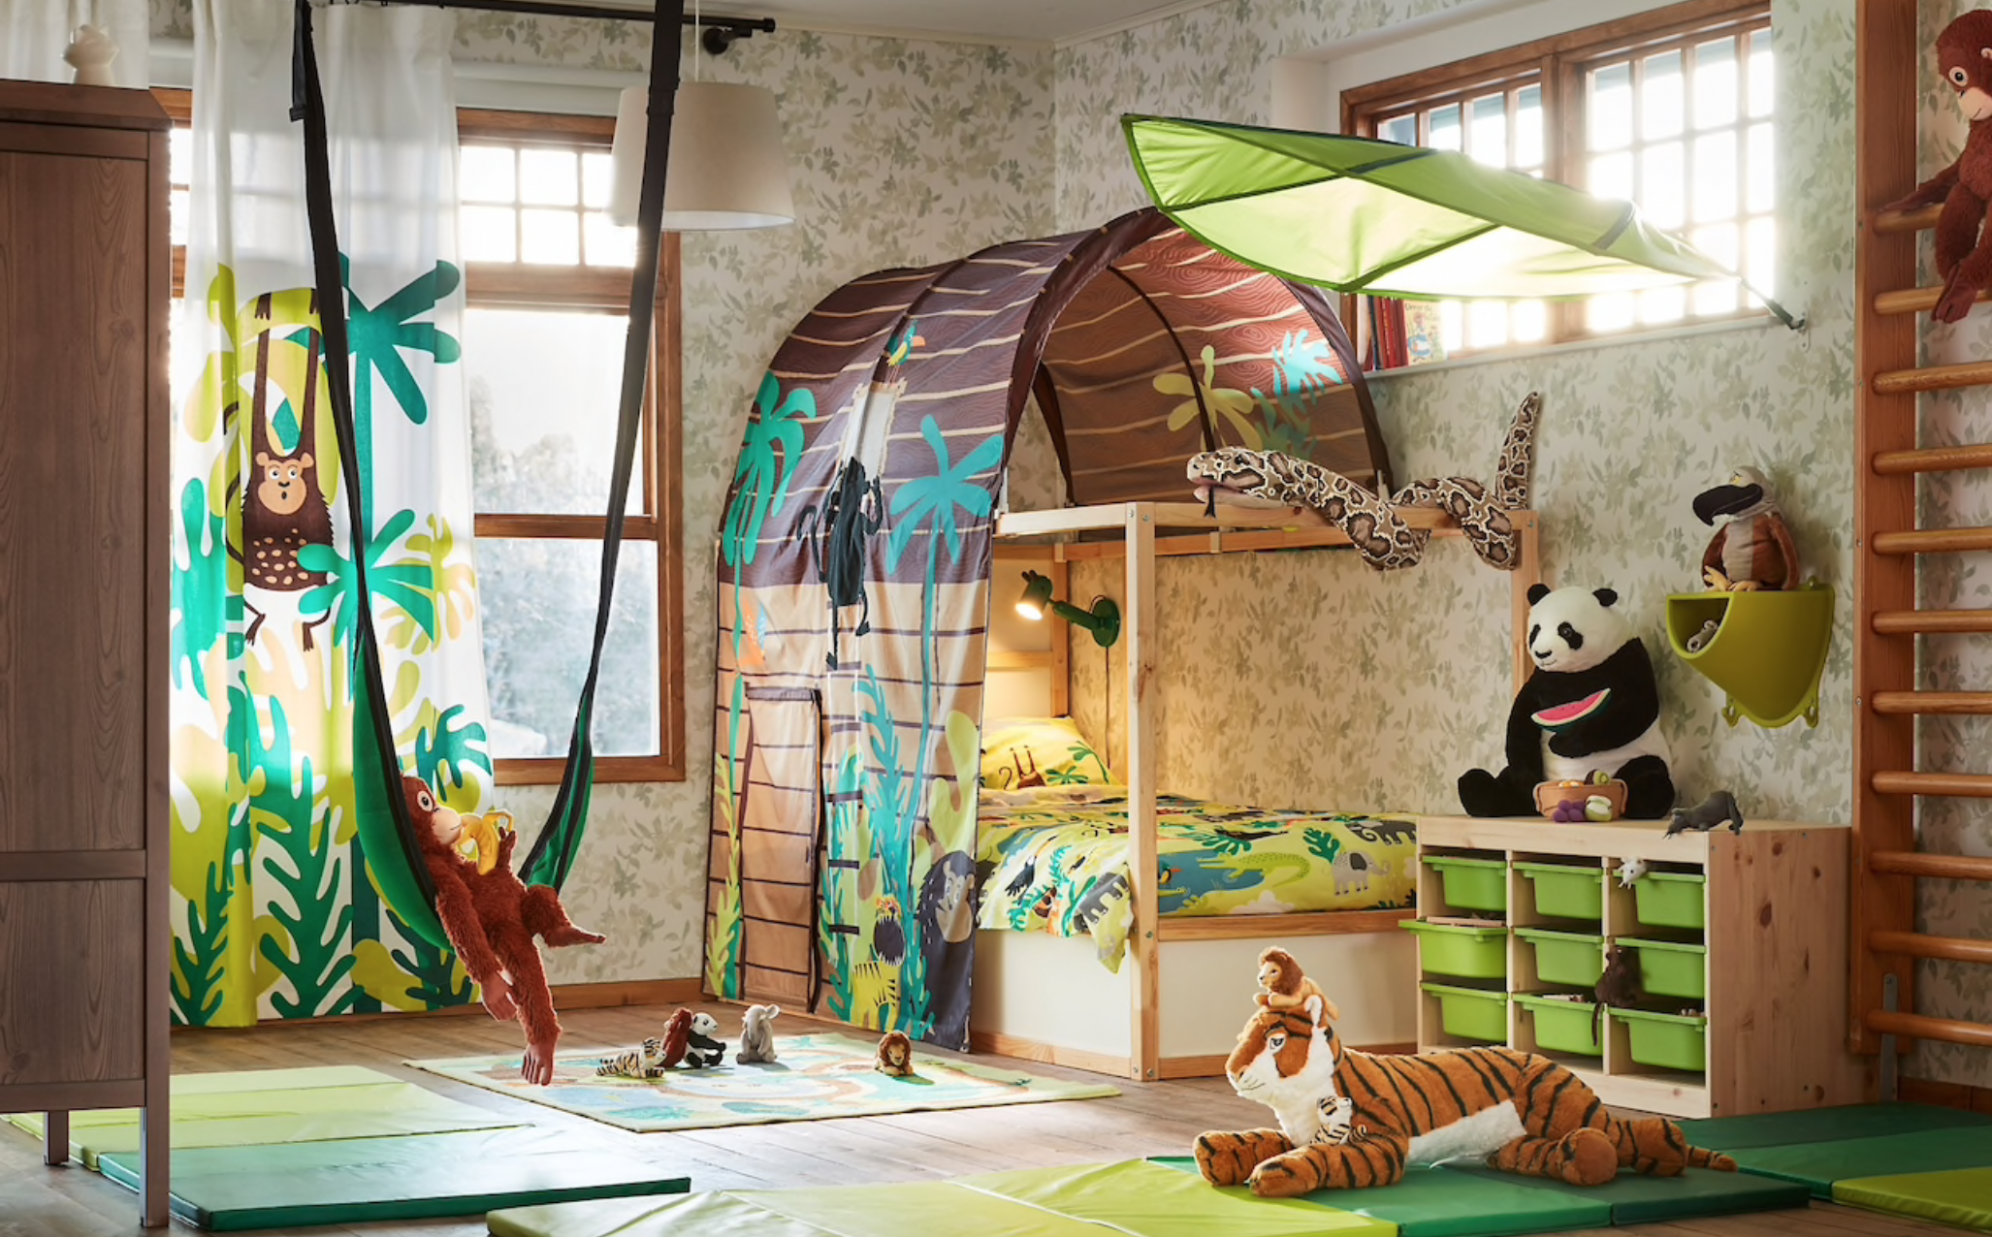 Ikea jungle inspired room idea for kids #Kidsroomideas (With ...